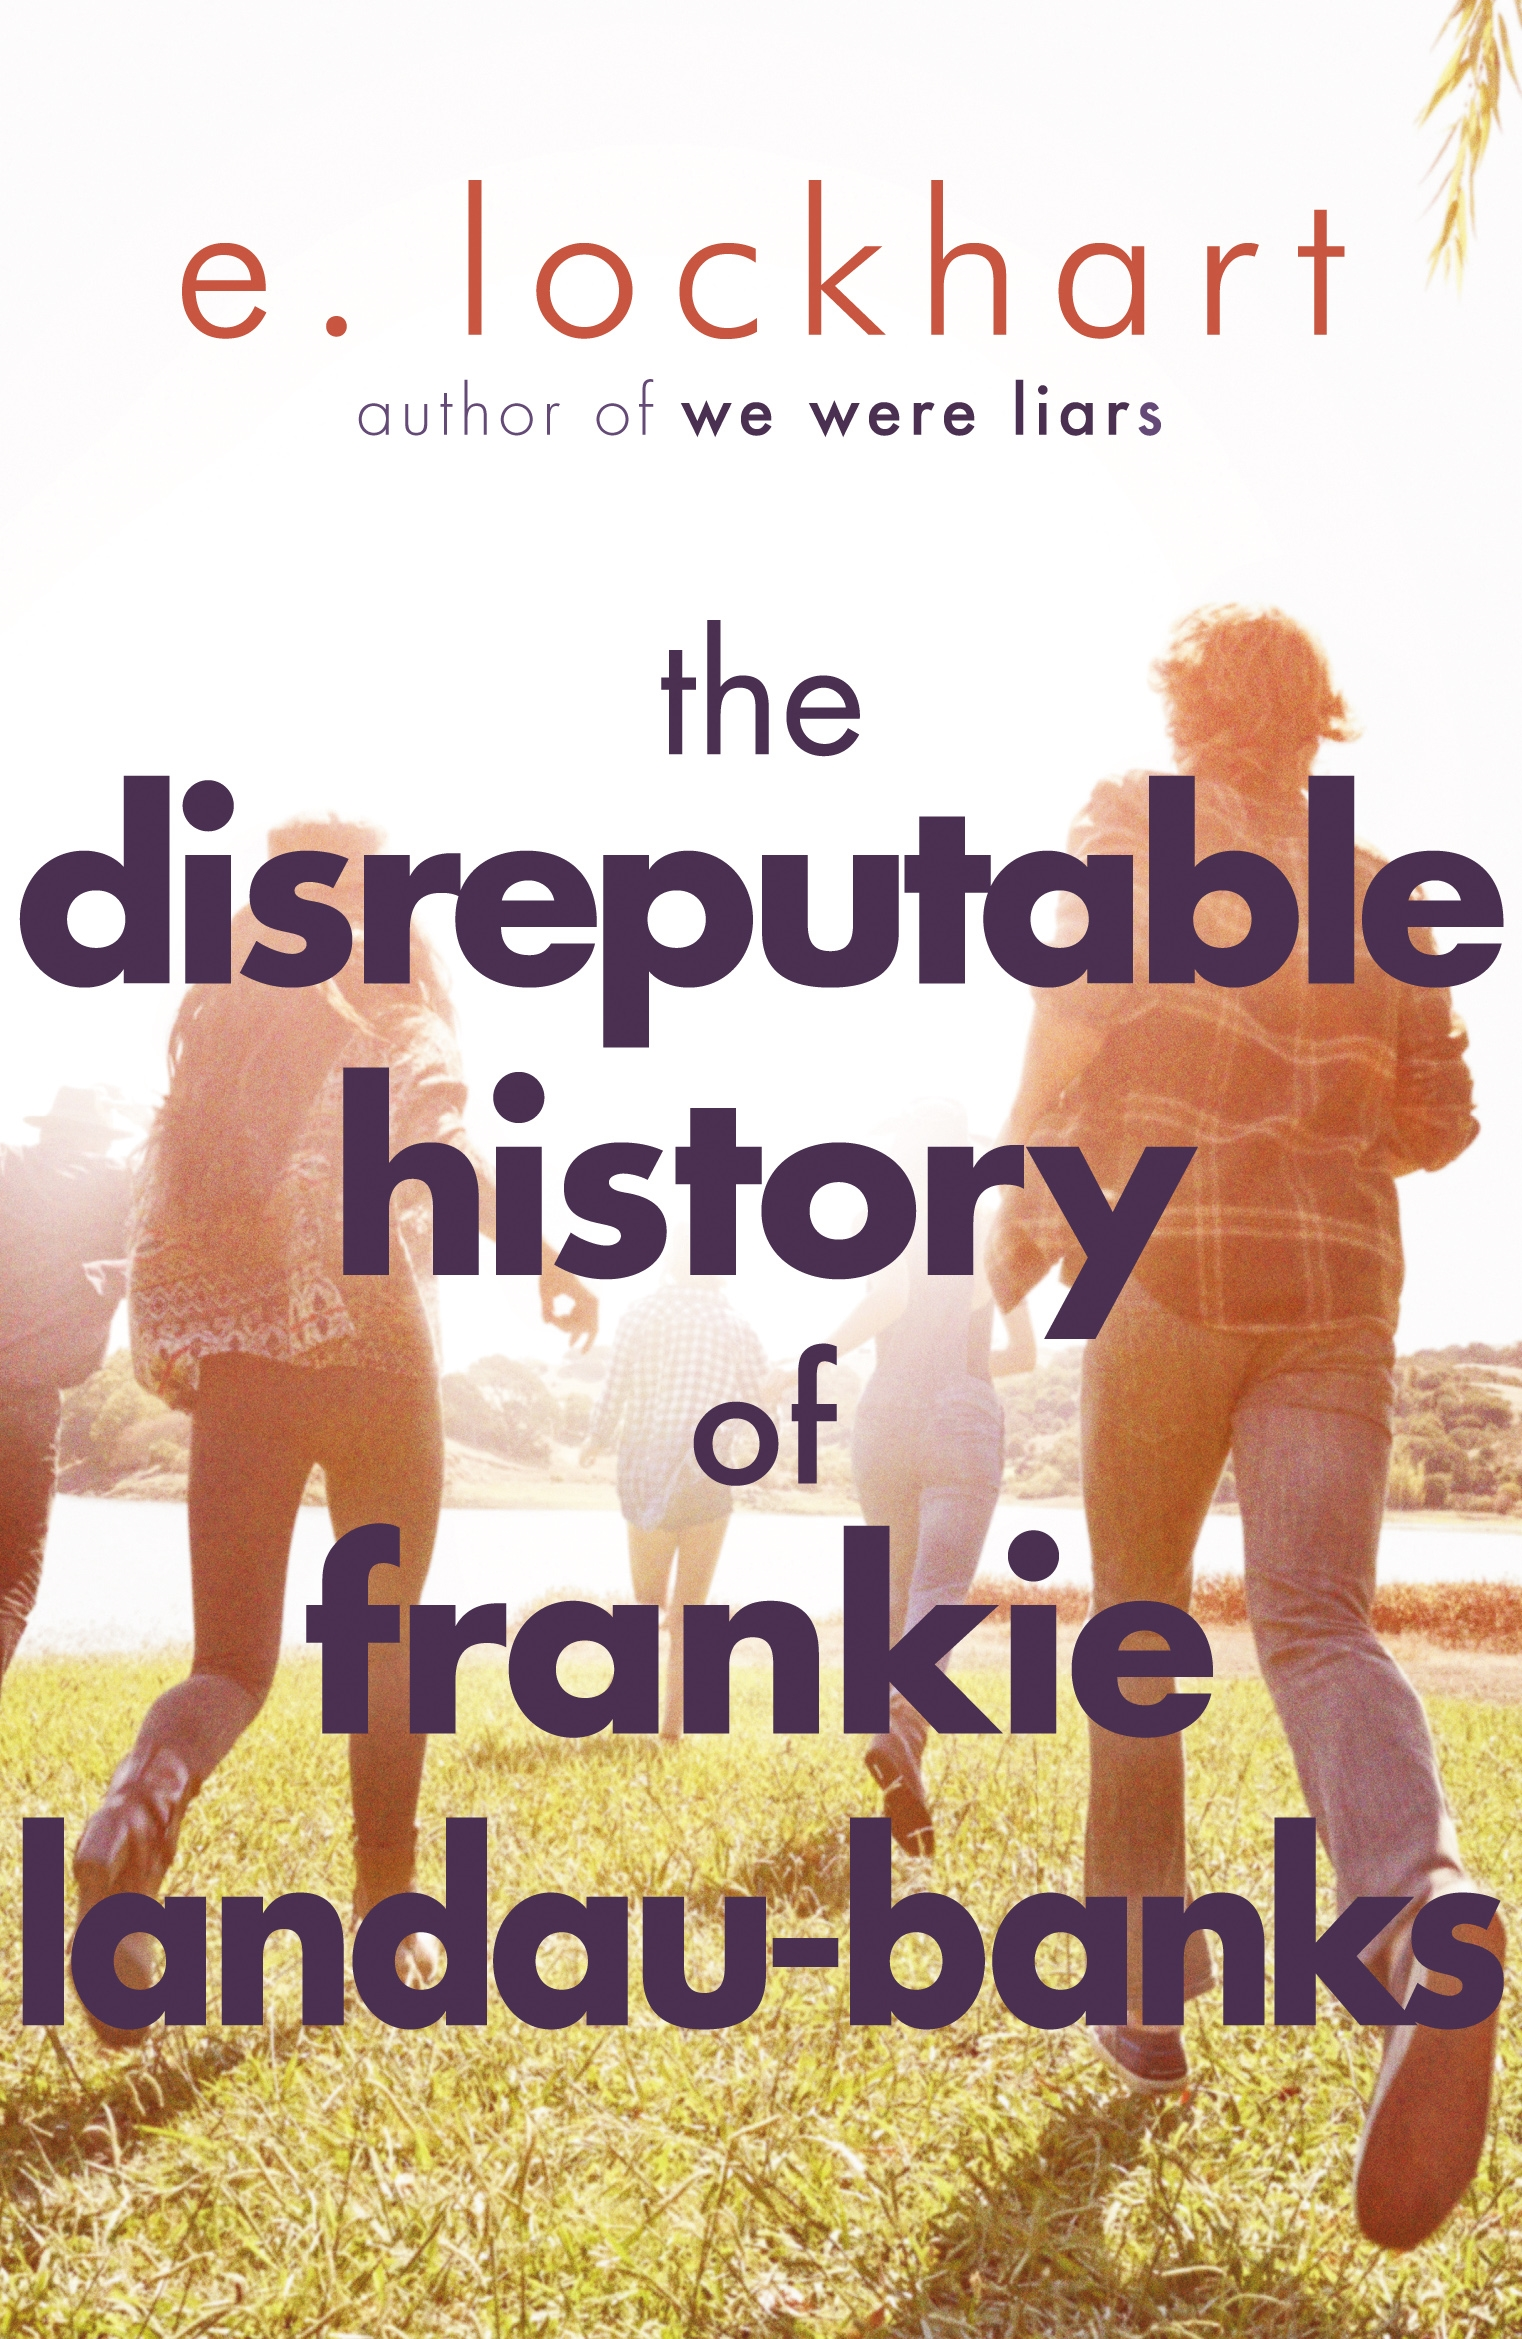 The Disreputable History of Frankie Landau-Banks by E. LockhartEmily Jenkins